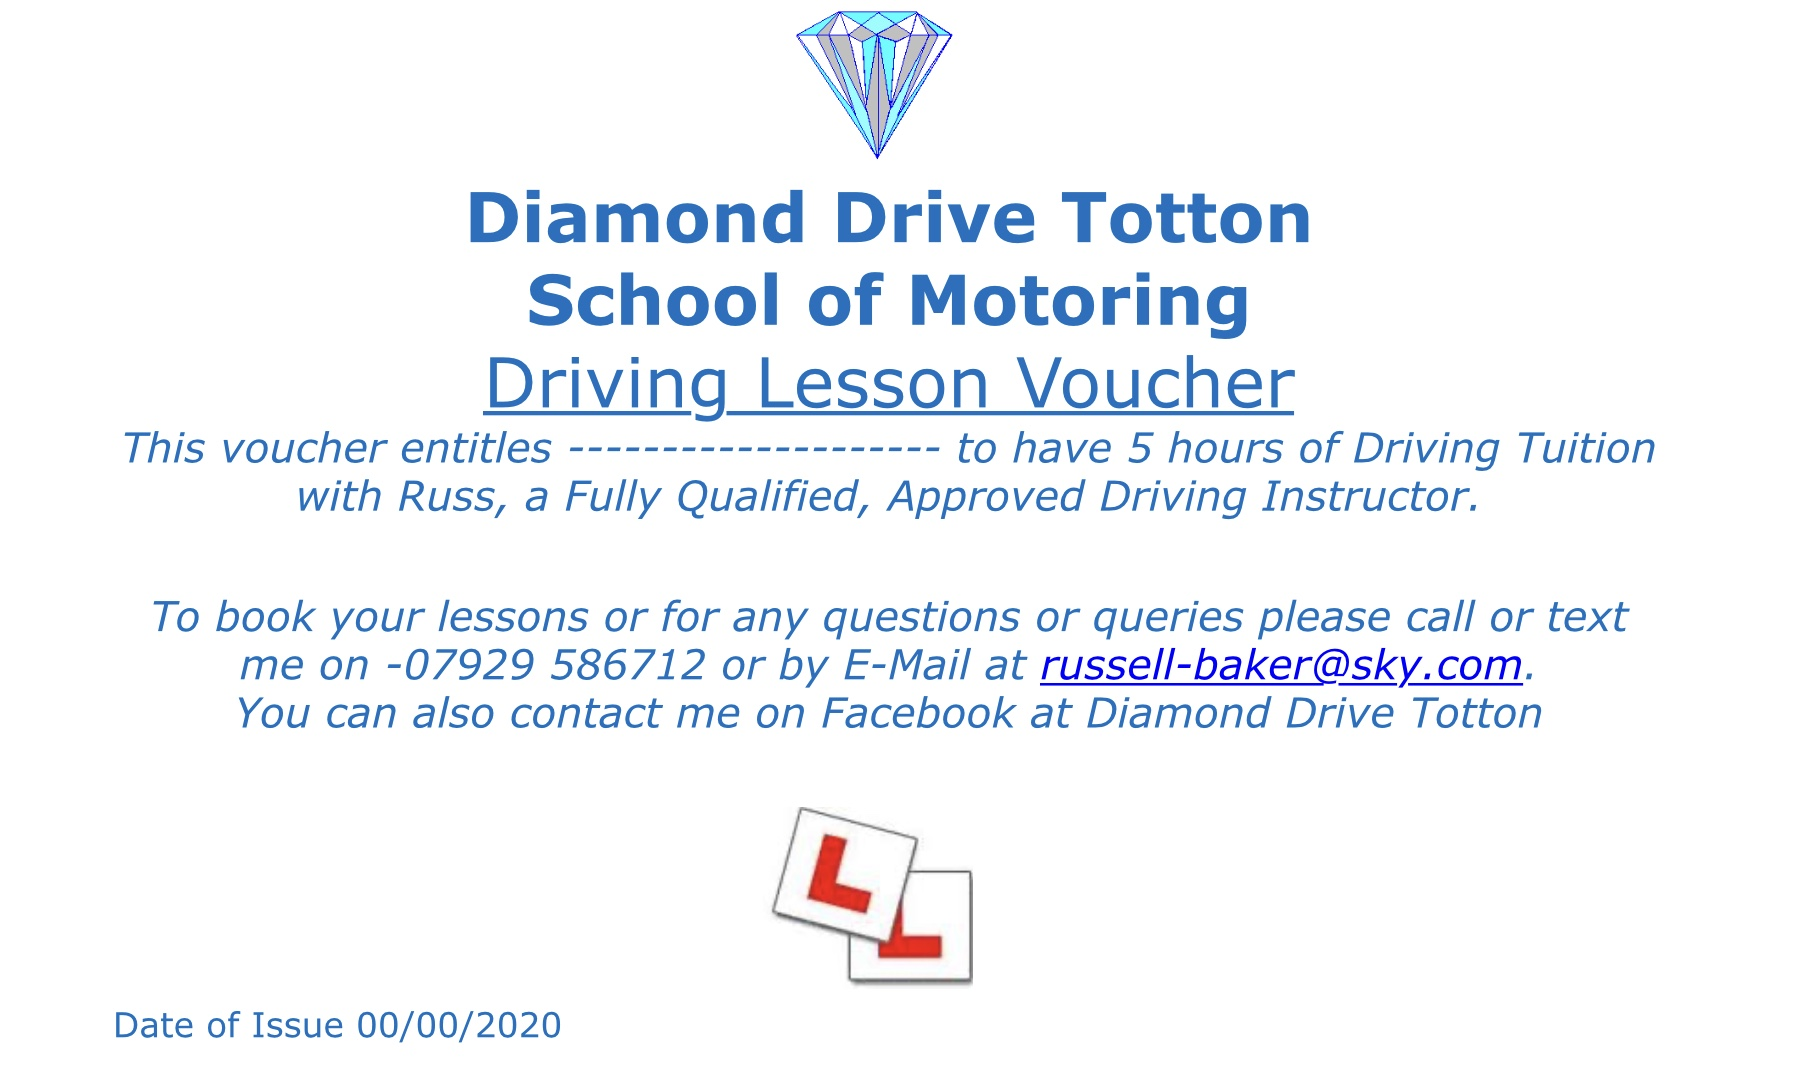 5 hour block of driving lessons